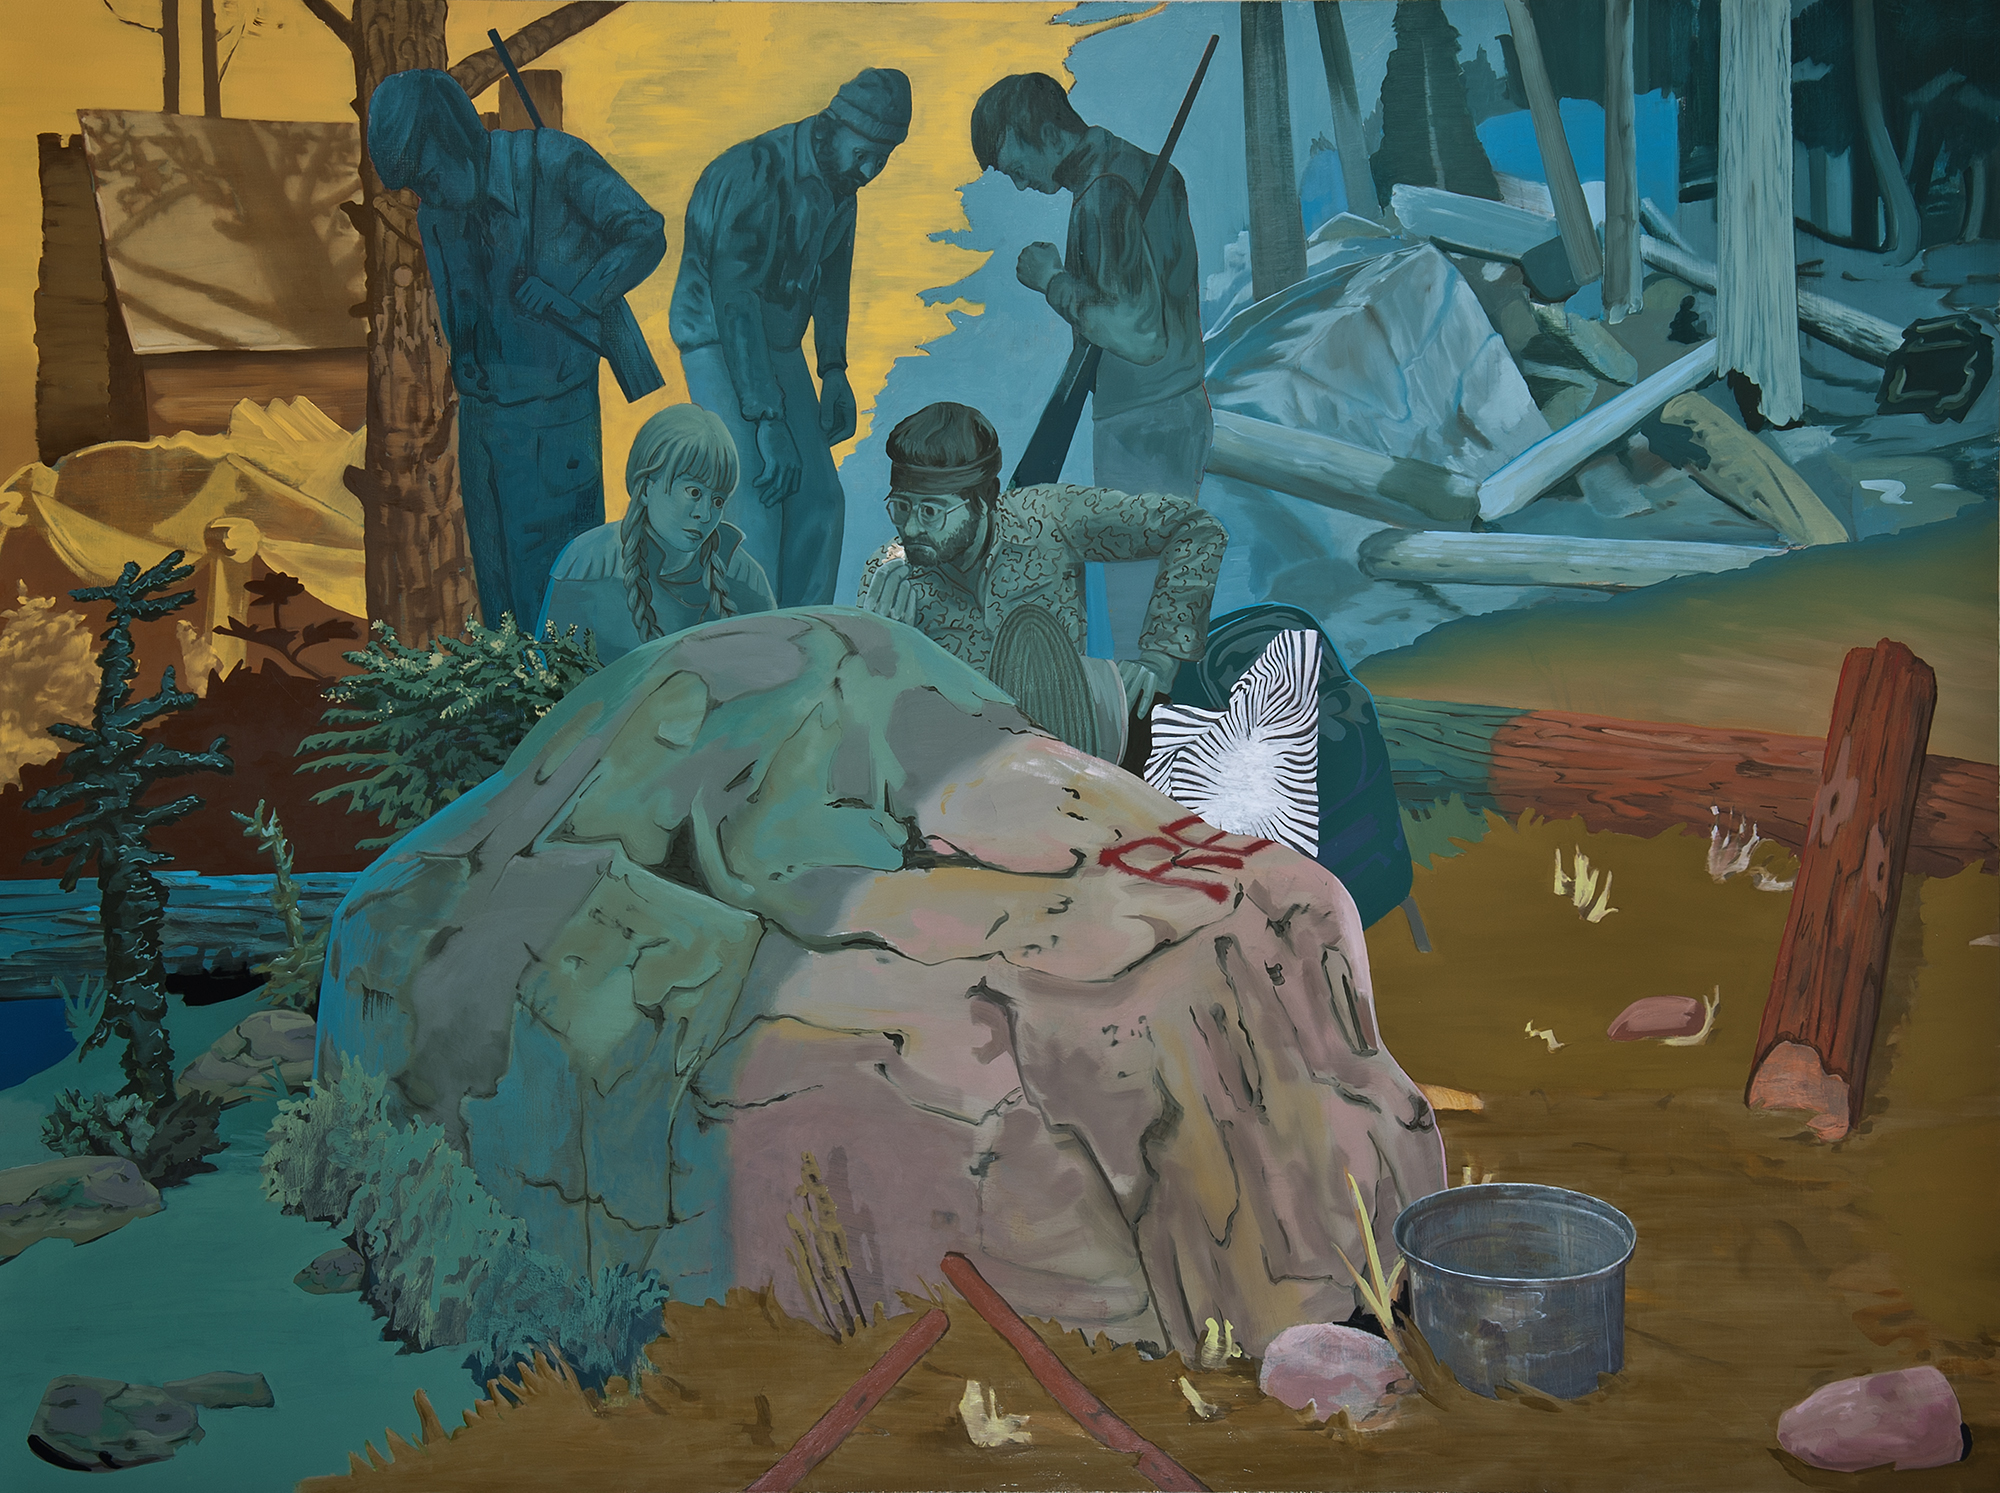 iDEATH (edibles) , 2013. oil on canvas, 72 x 96 inches